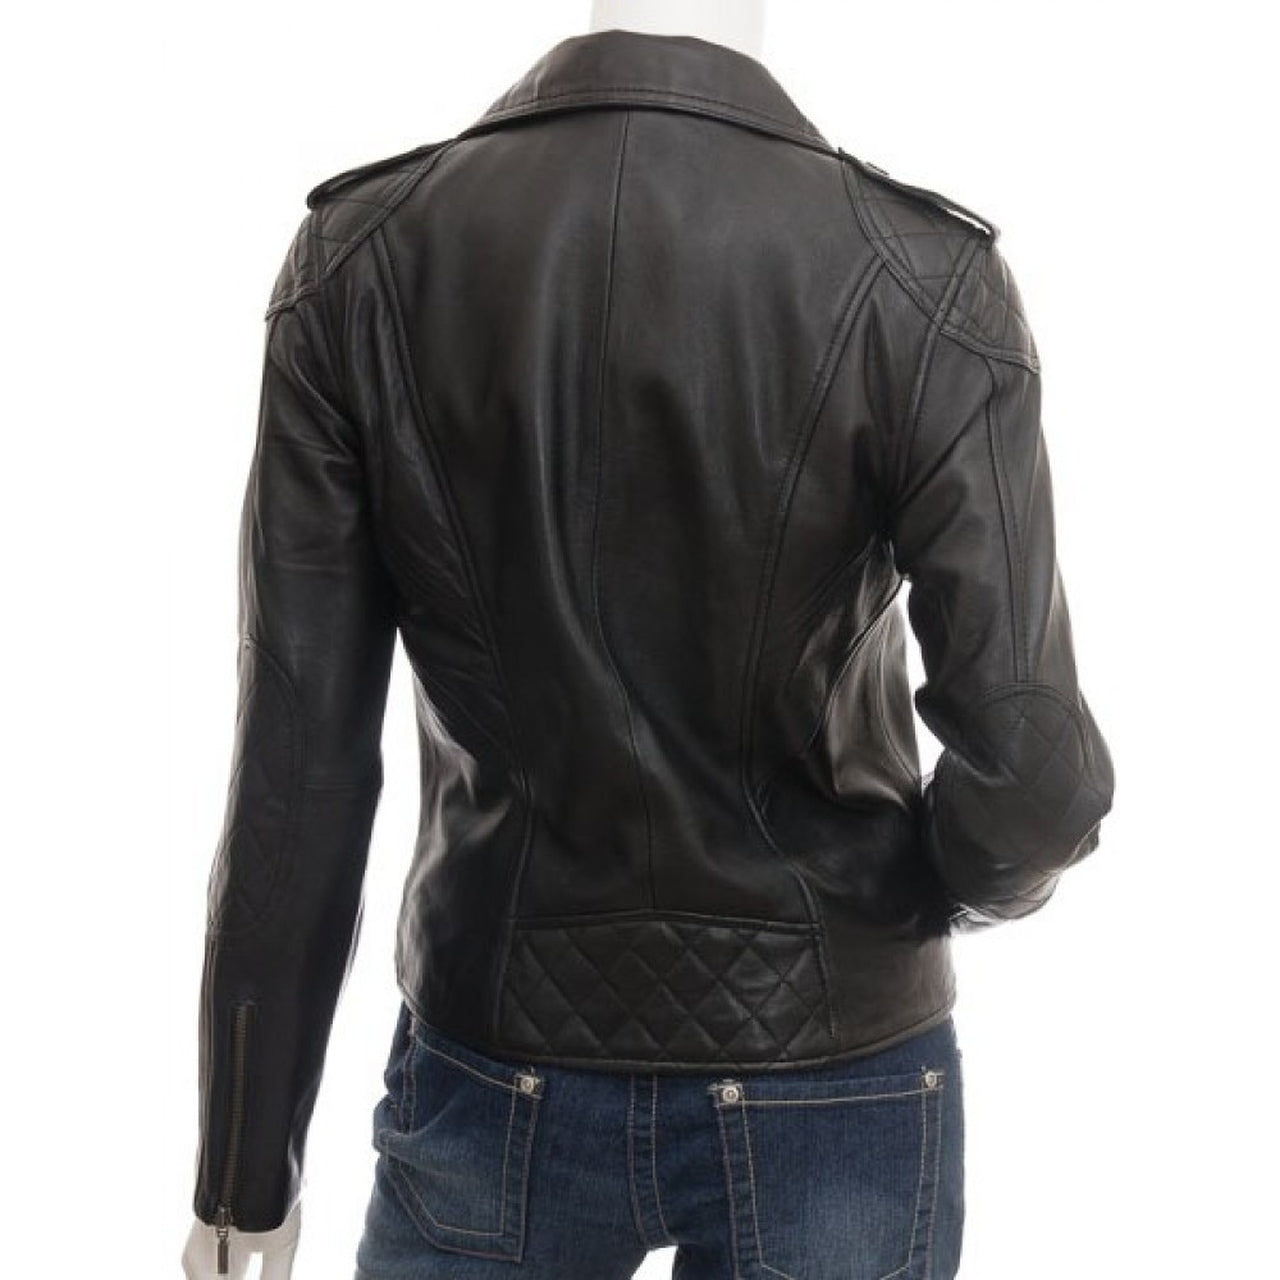 Black Stylish Leather Jacket for Women - Leather Jacket